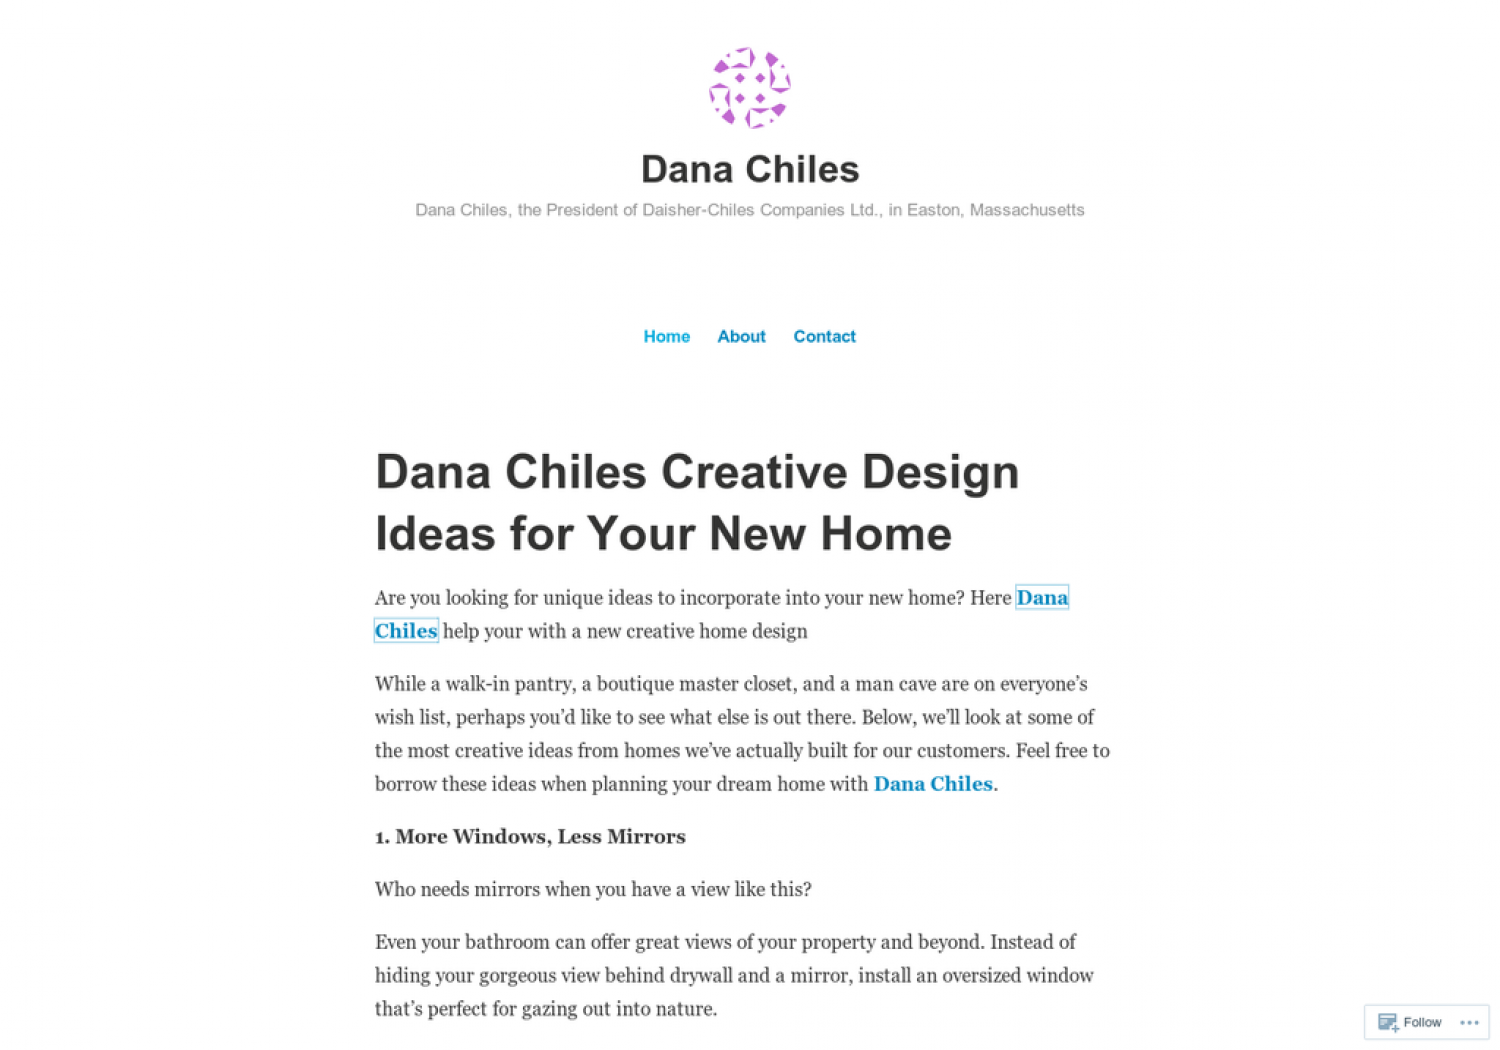 Dana Chiles Creative Design Ideas for Your New Home Infographic